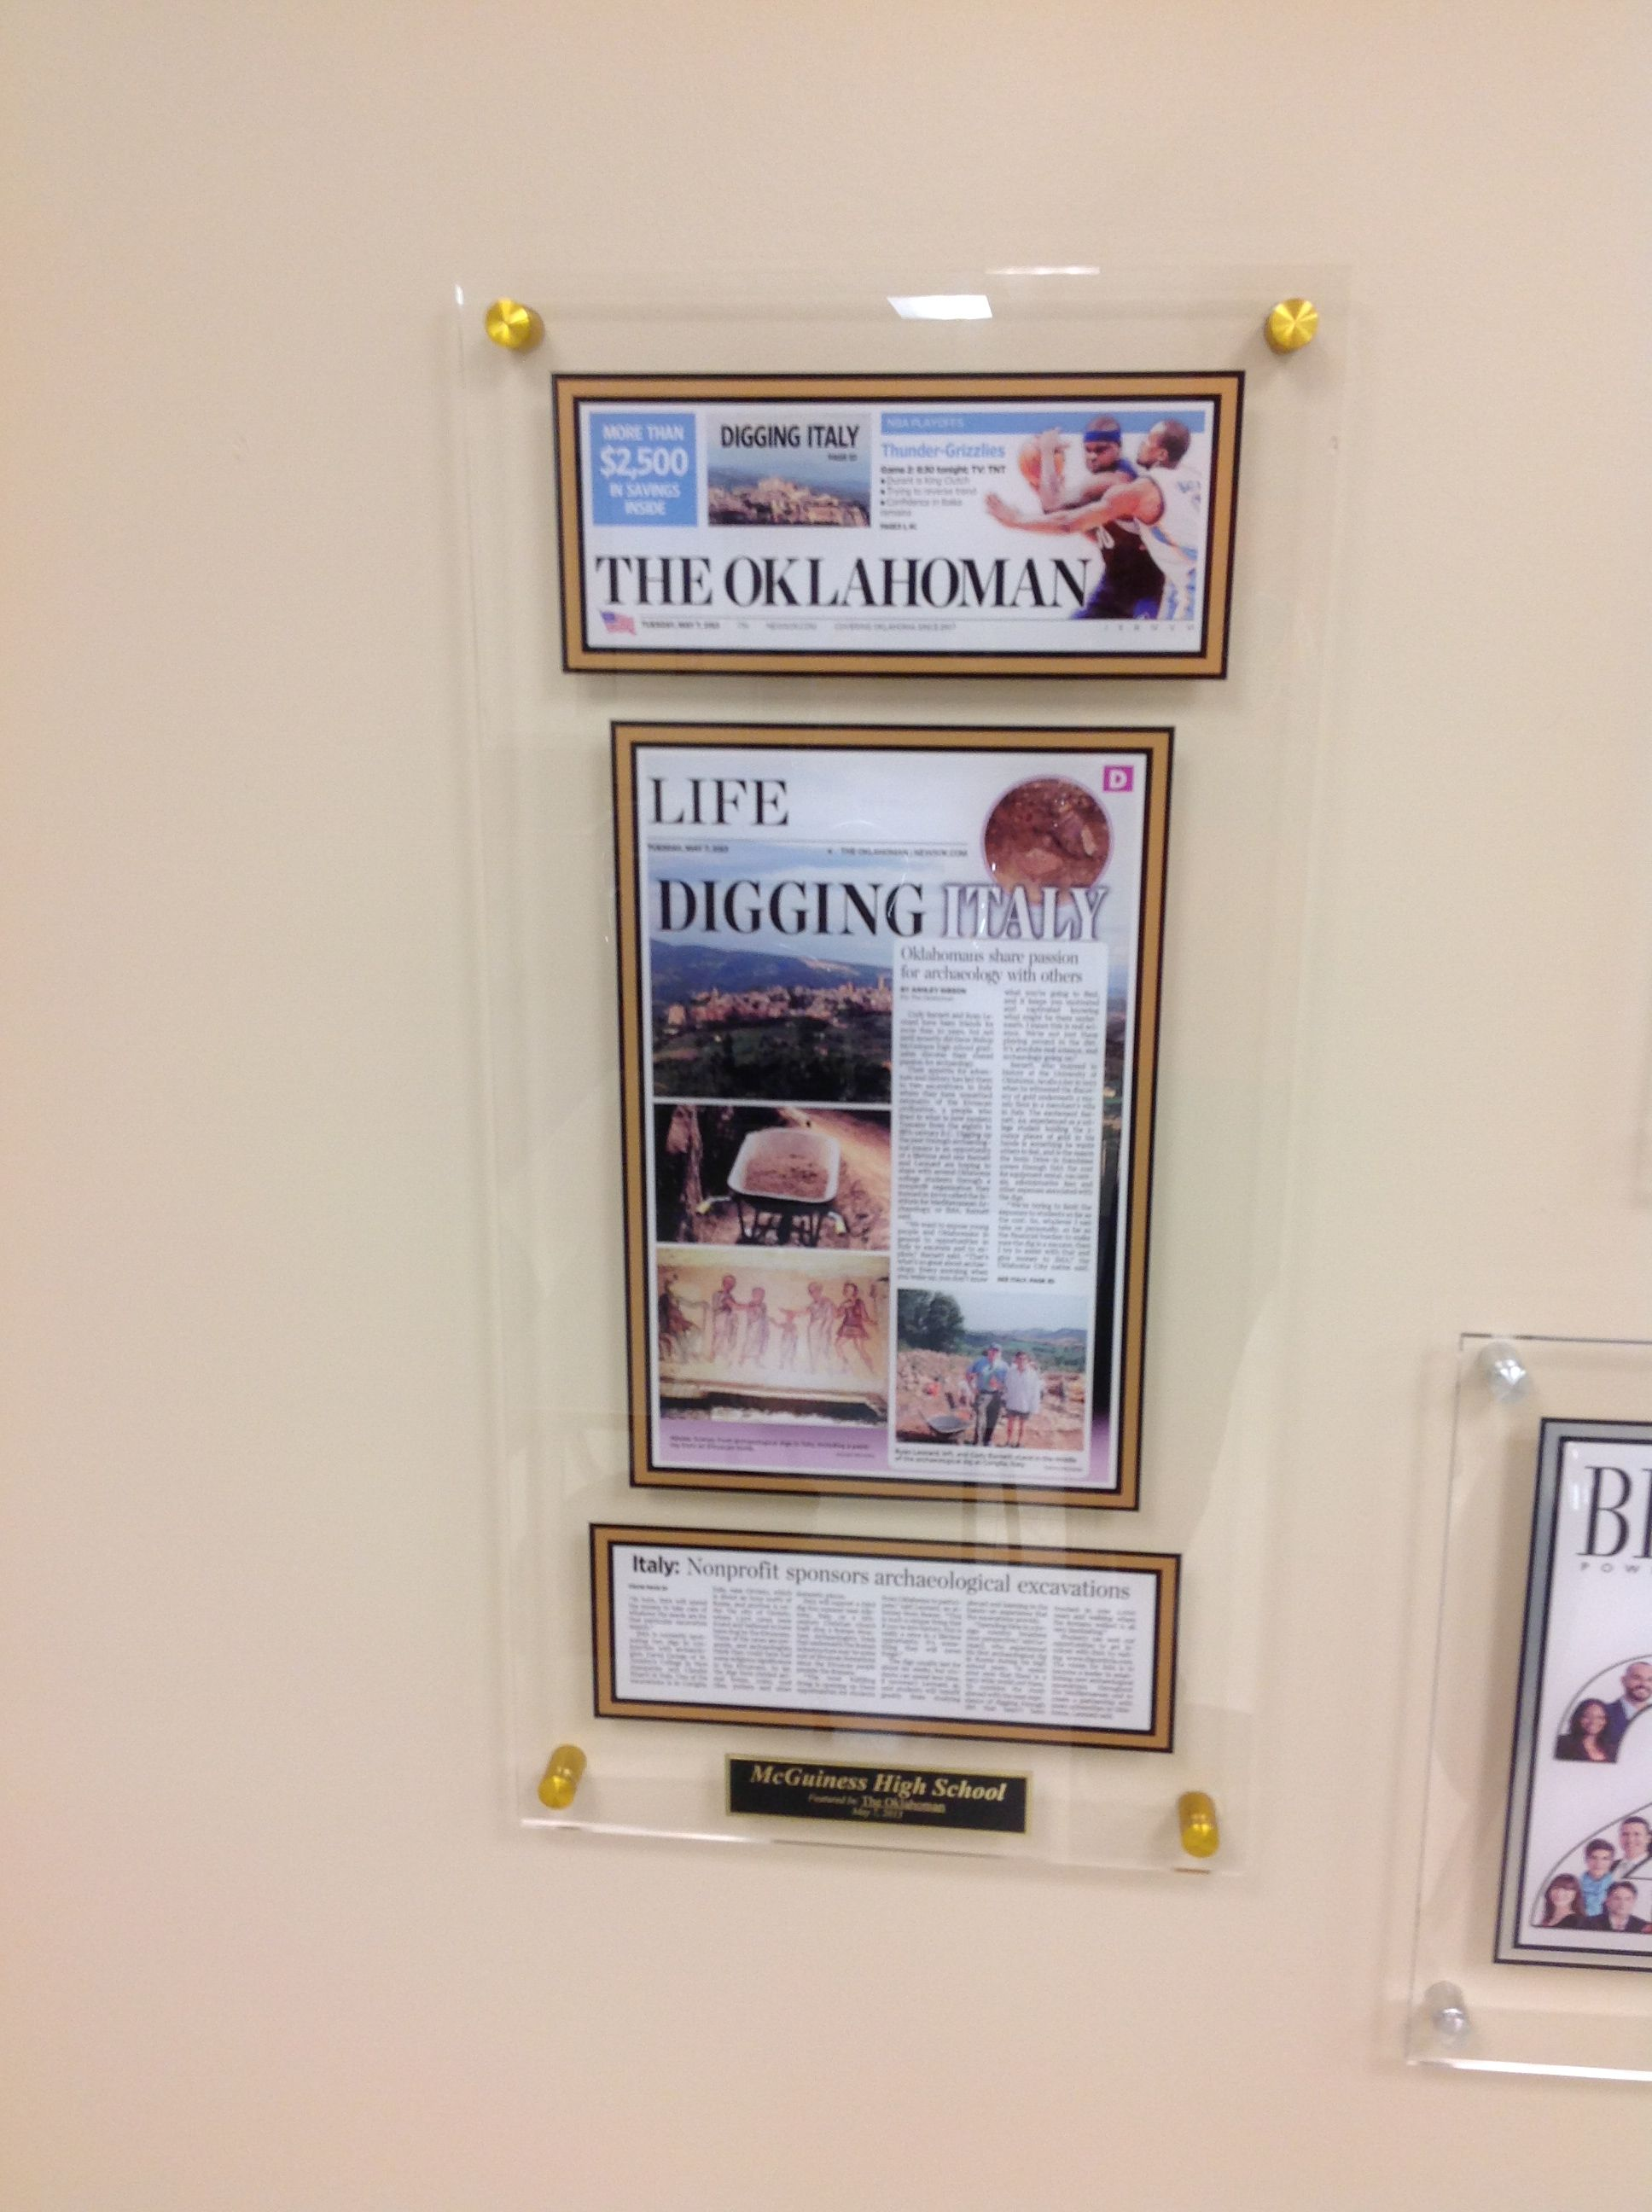 Scrapbook ideas newspaper articles - Framing A Newspaper Article With An Acrylic Style Plaque For Display Gold Stand Off Mounting